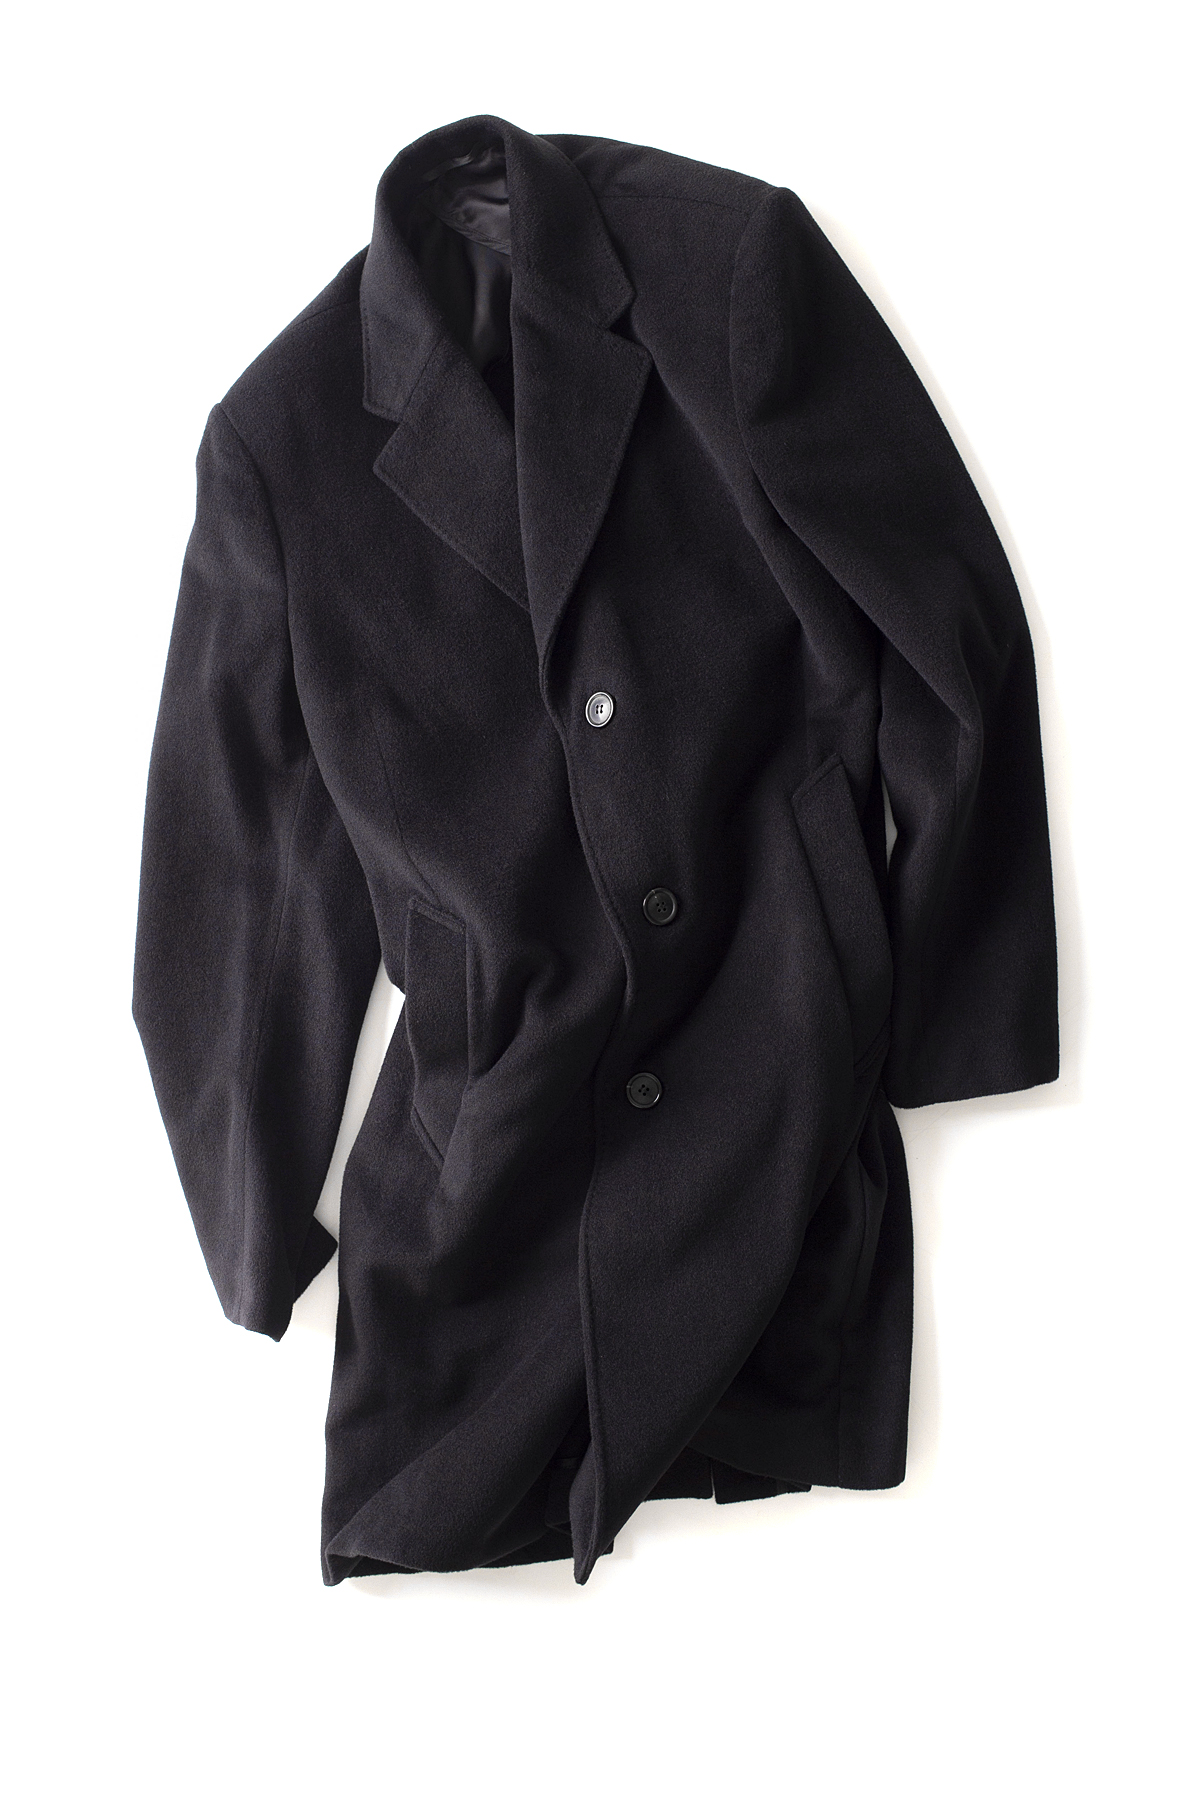 OUR LEGACY : Unconstructed Classic Coat (Black)